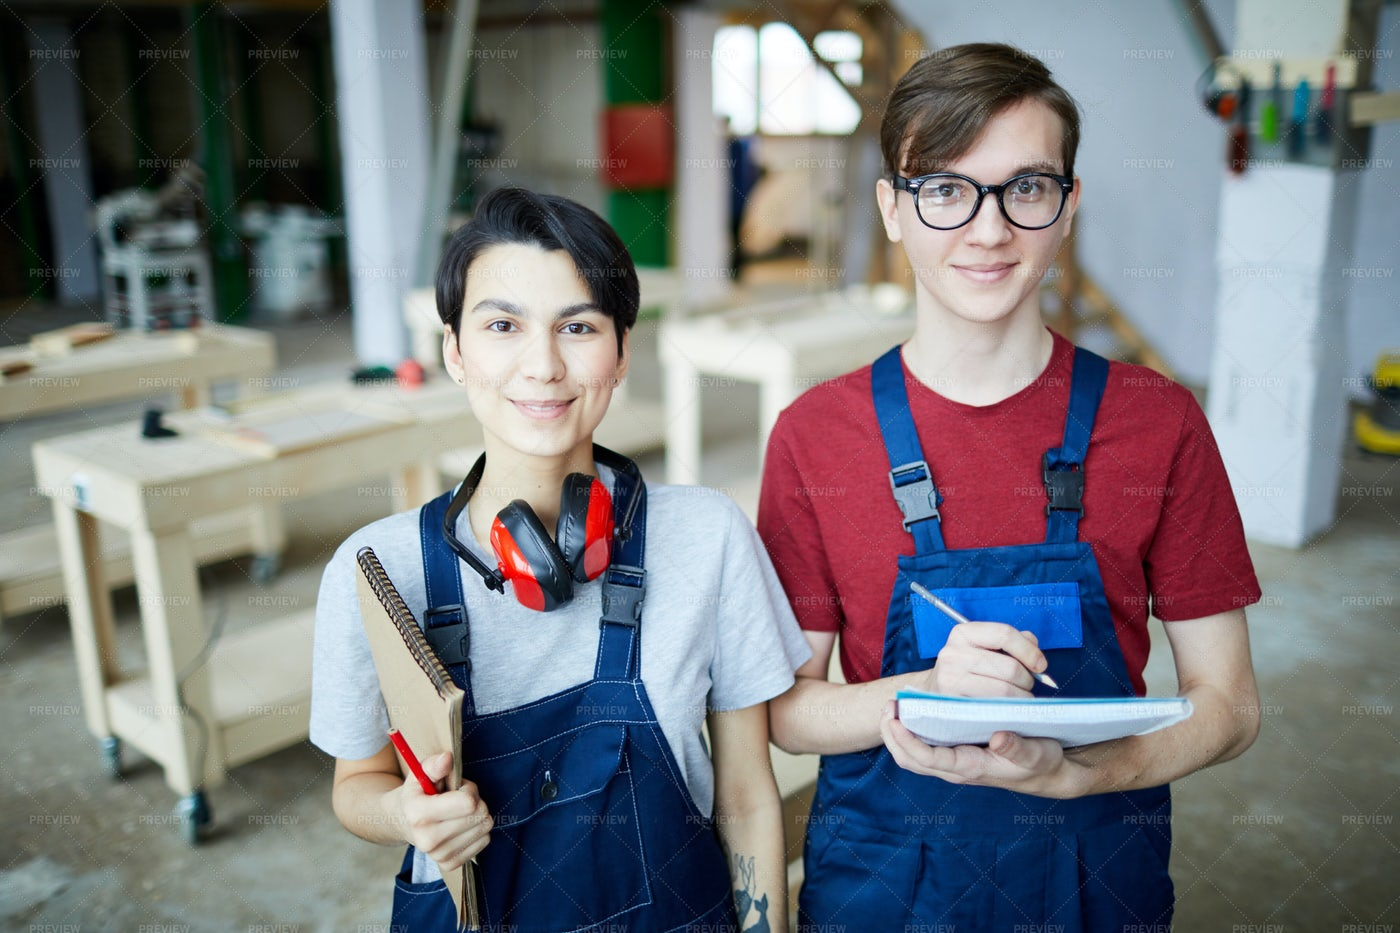 Carpentry Students In Workshop: Stock Photos